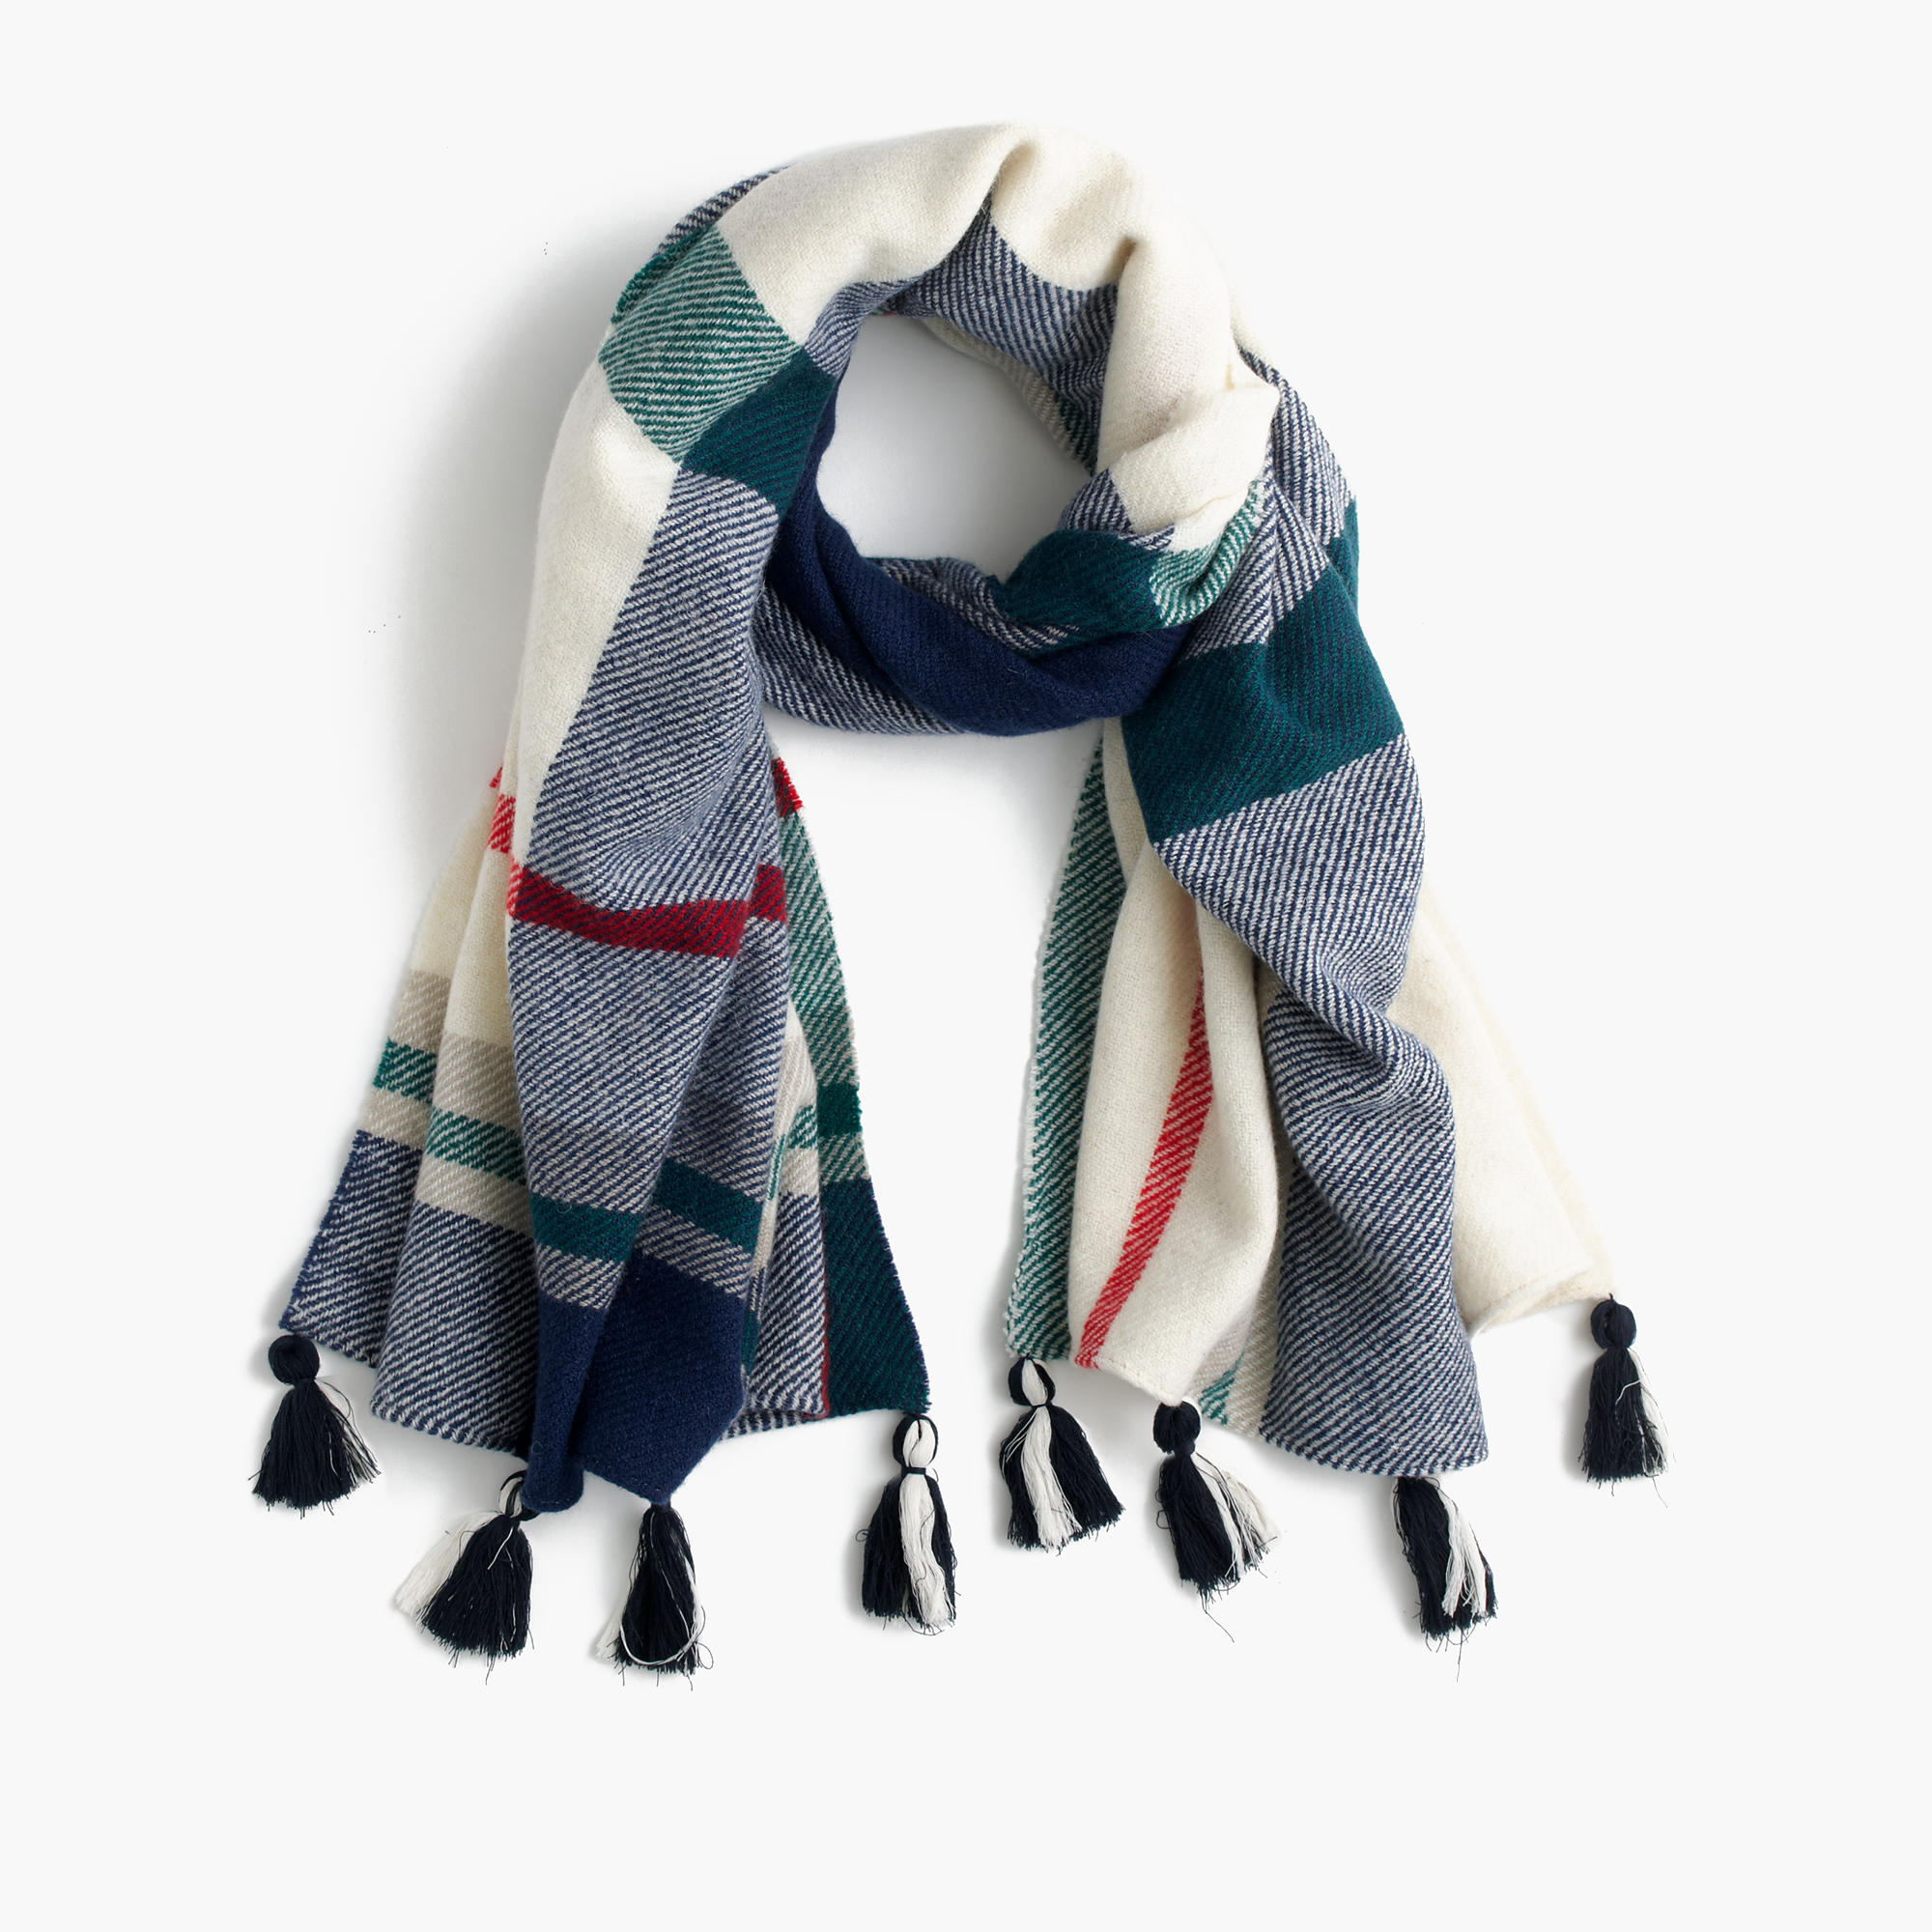 Women / Accessories / Scarves New Arrivals. Exclusively Ours. Style Infinity Mixed-Stitch Wool Scarf. $ Pas de Calais Tie-Dyed Cashmere Gauze Scarf. $ WELCOME TO THE BARNEYS NEW YORK PRIVATE JEWELRY SALE.